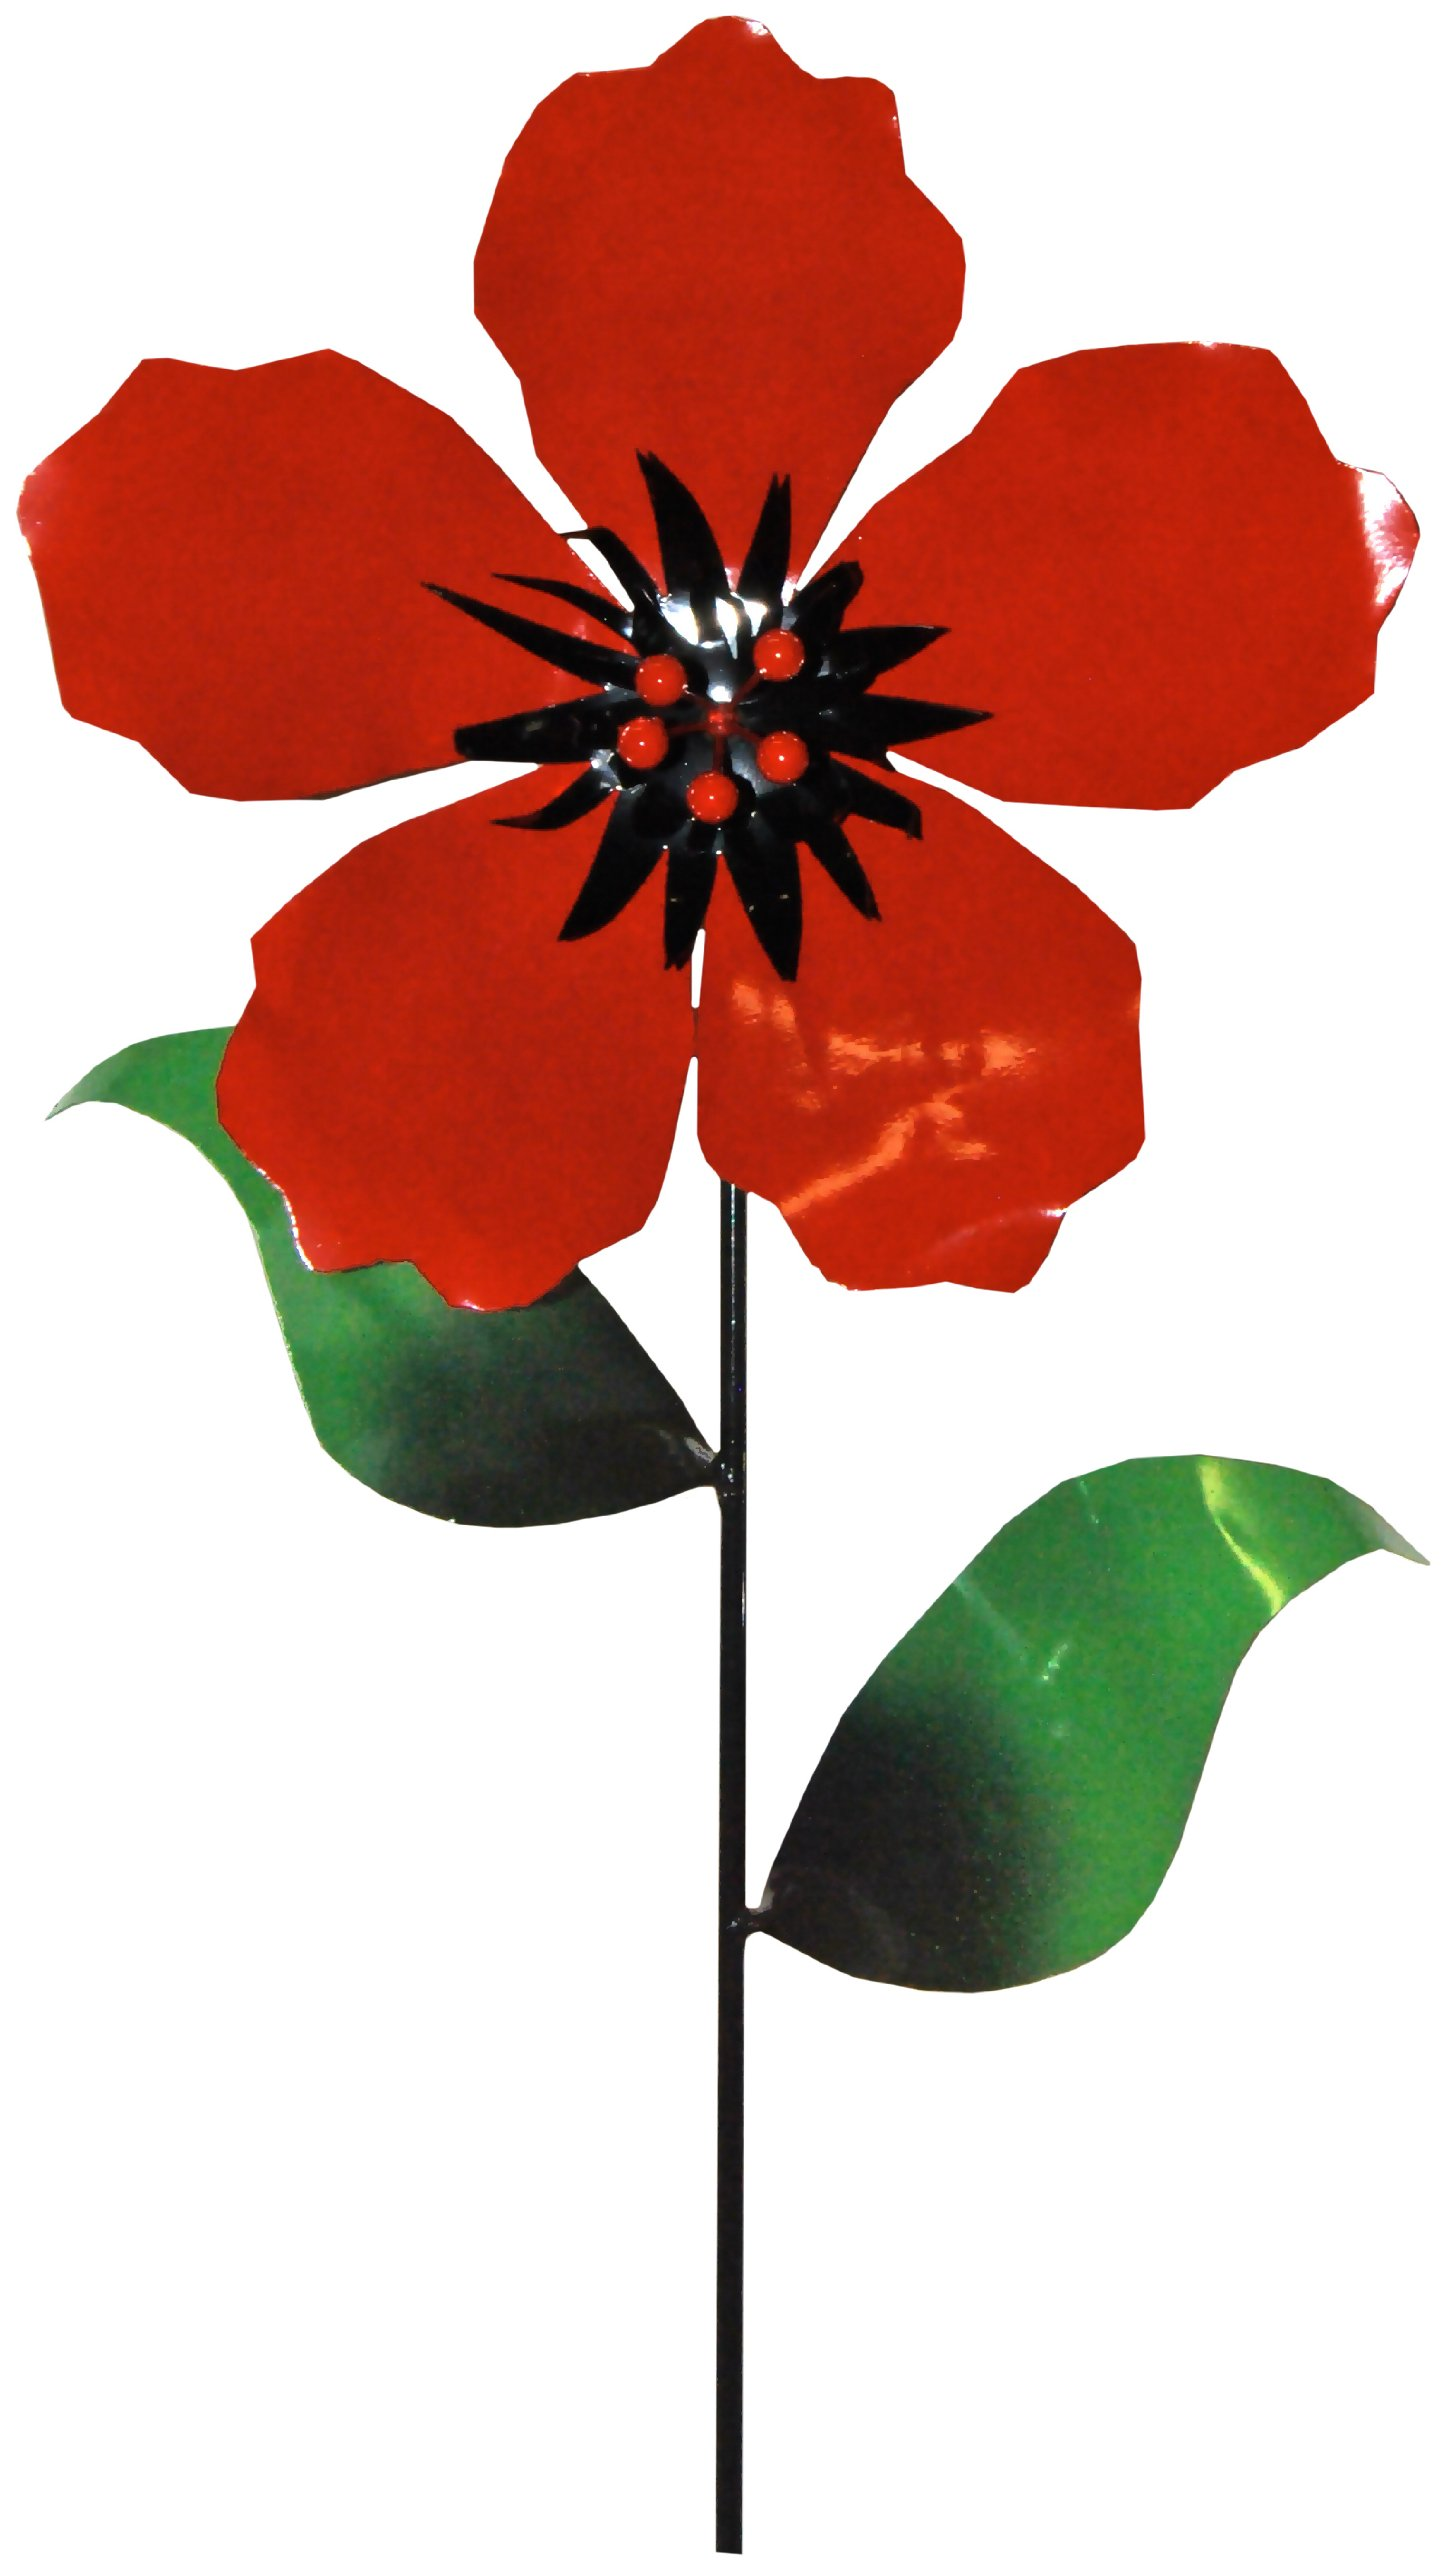 Steven Cooper Metalsmith AFLWR-19-L Artificial Garden Flower on Footed Stake, 5-Feet, Red